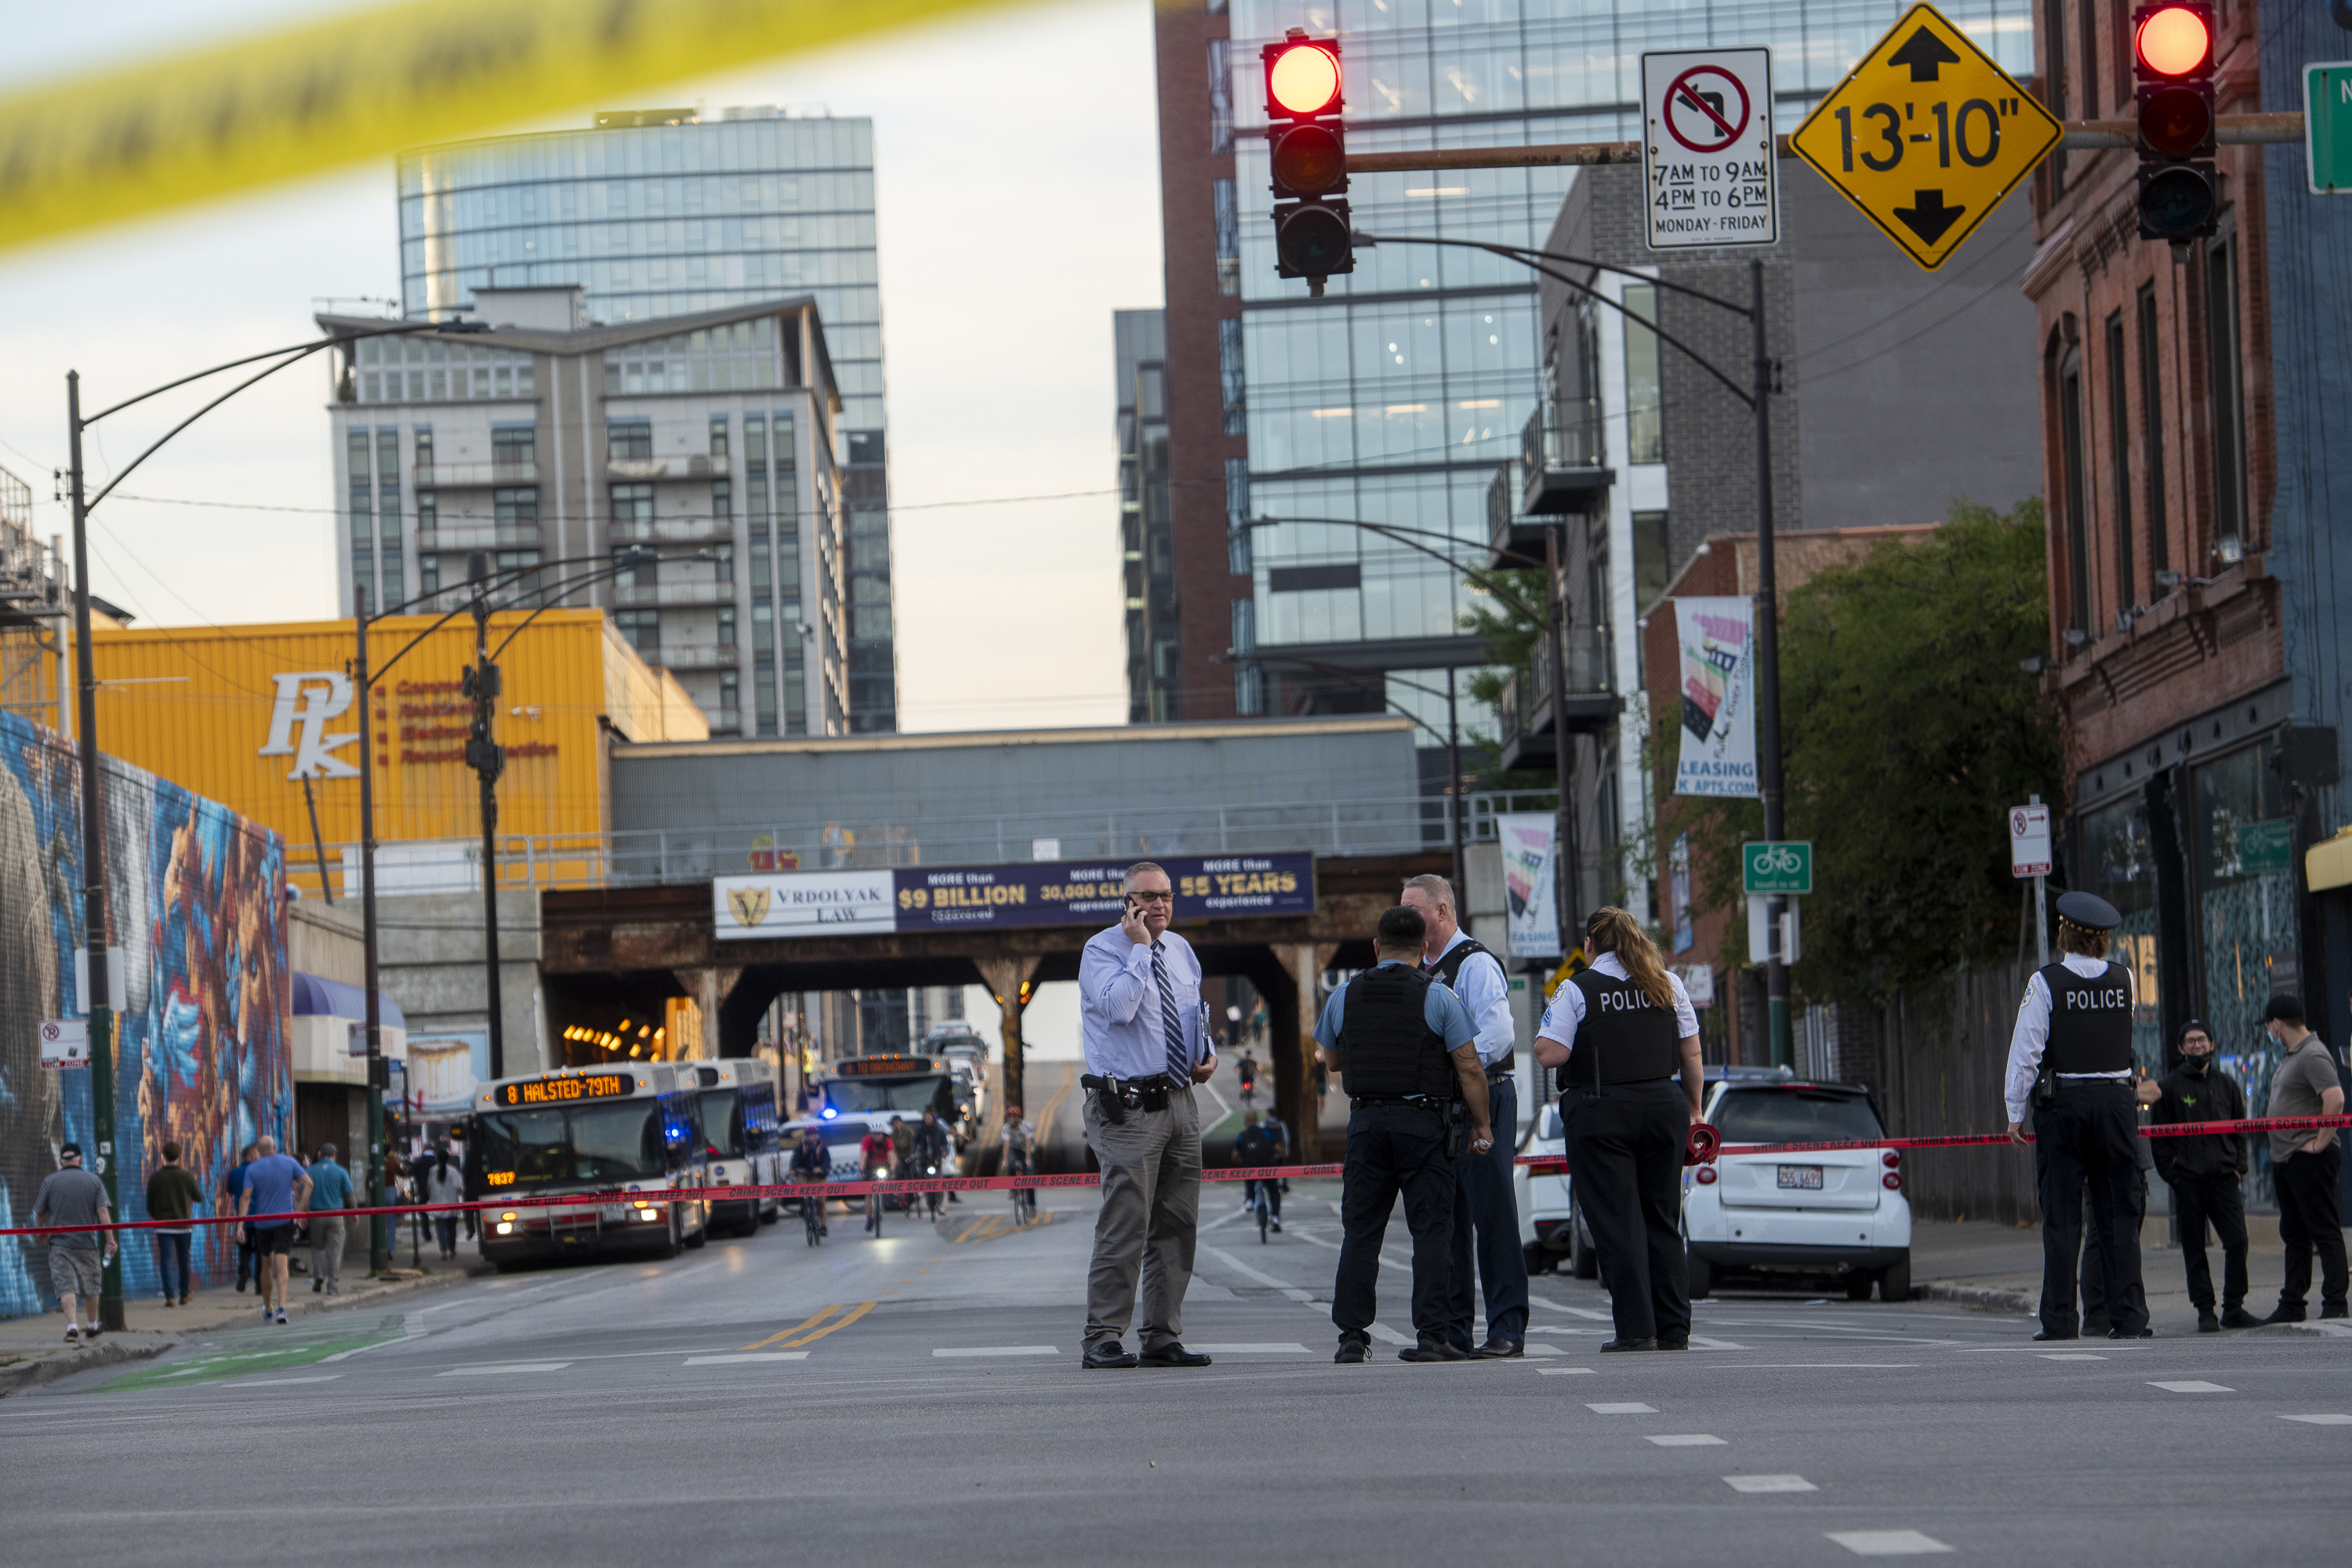 Chicago police work the scene where multiple people were shot near the Grand Avenue, Halsted Street, and Milwaukee Avenue intersection, in the West Town neighborhood, Wednesday, Sept. 29, 2021.